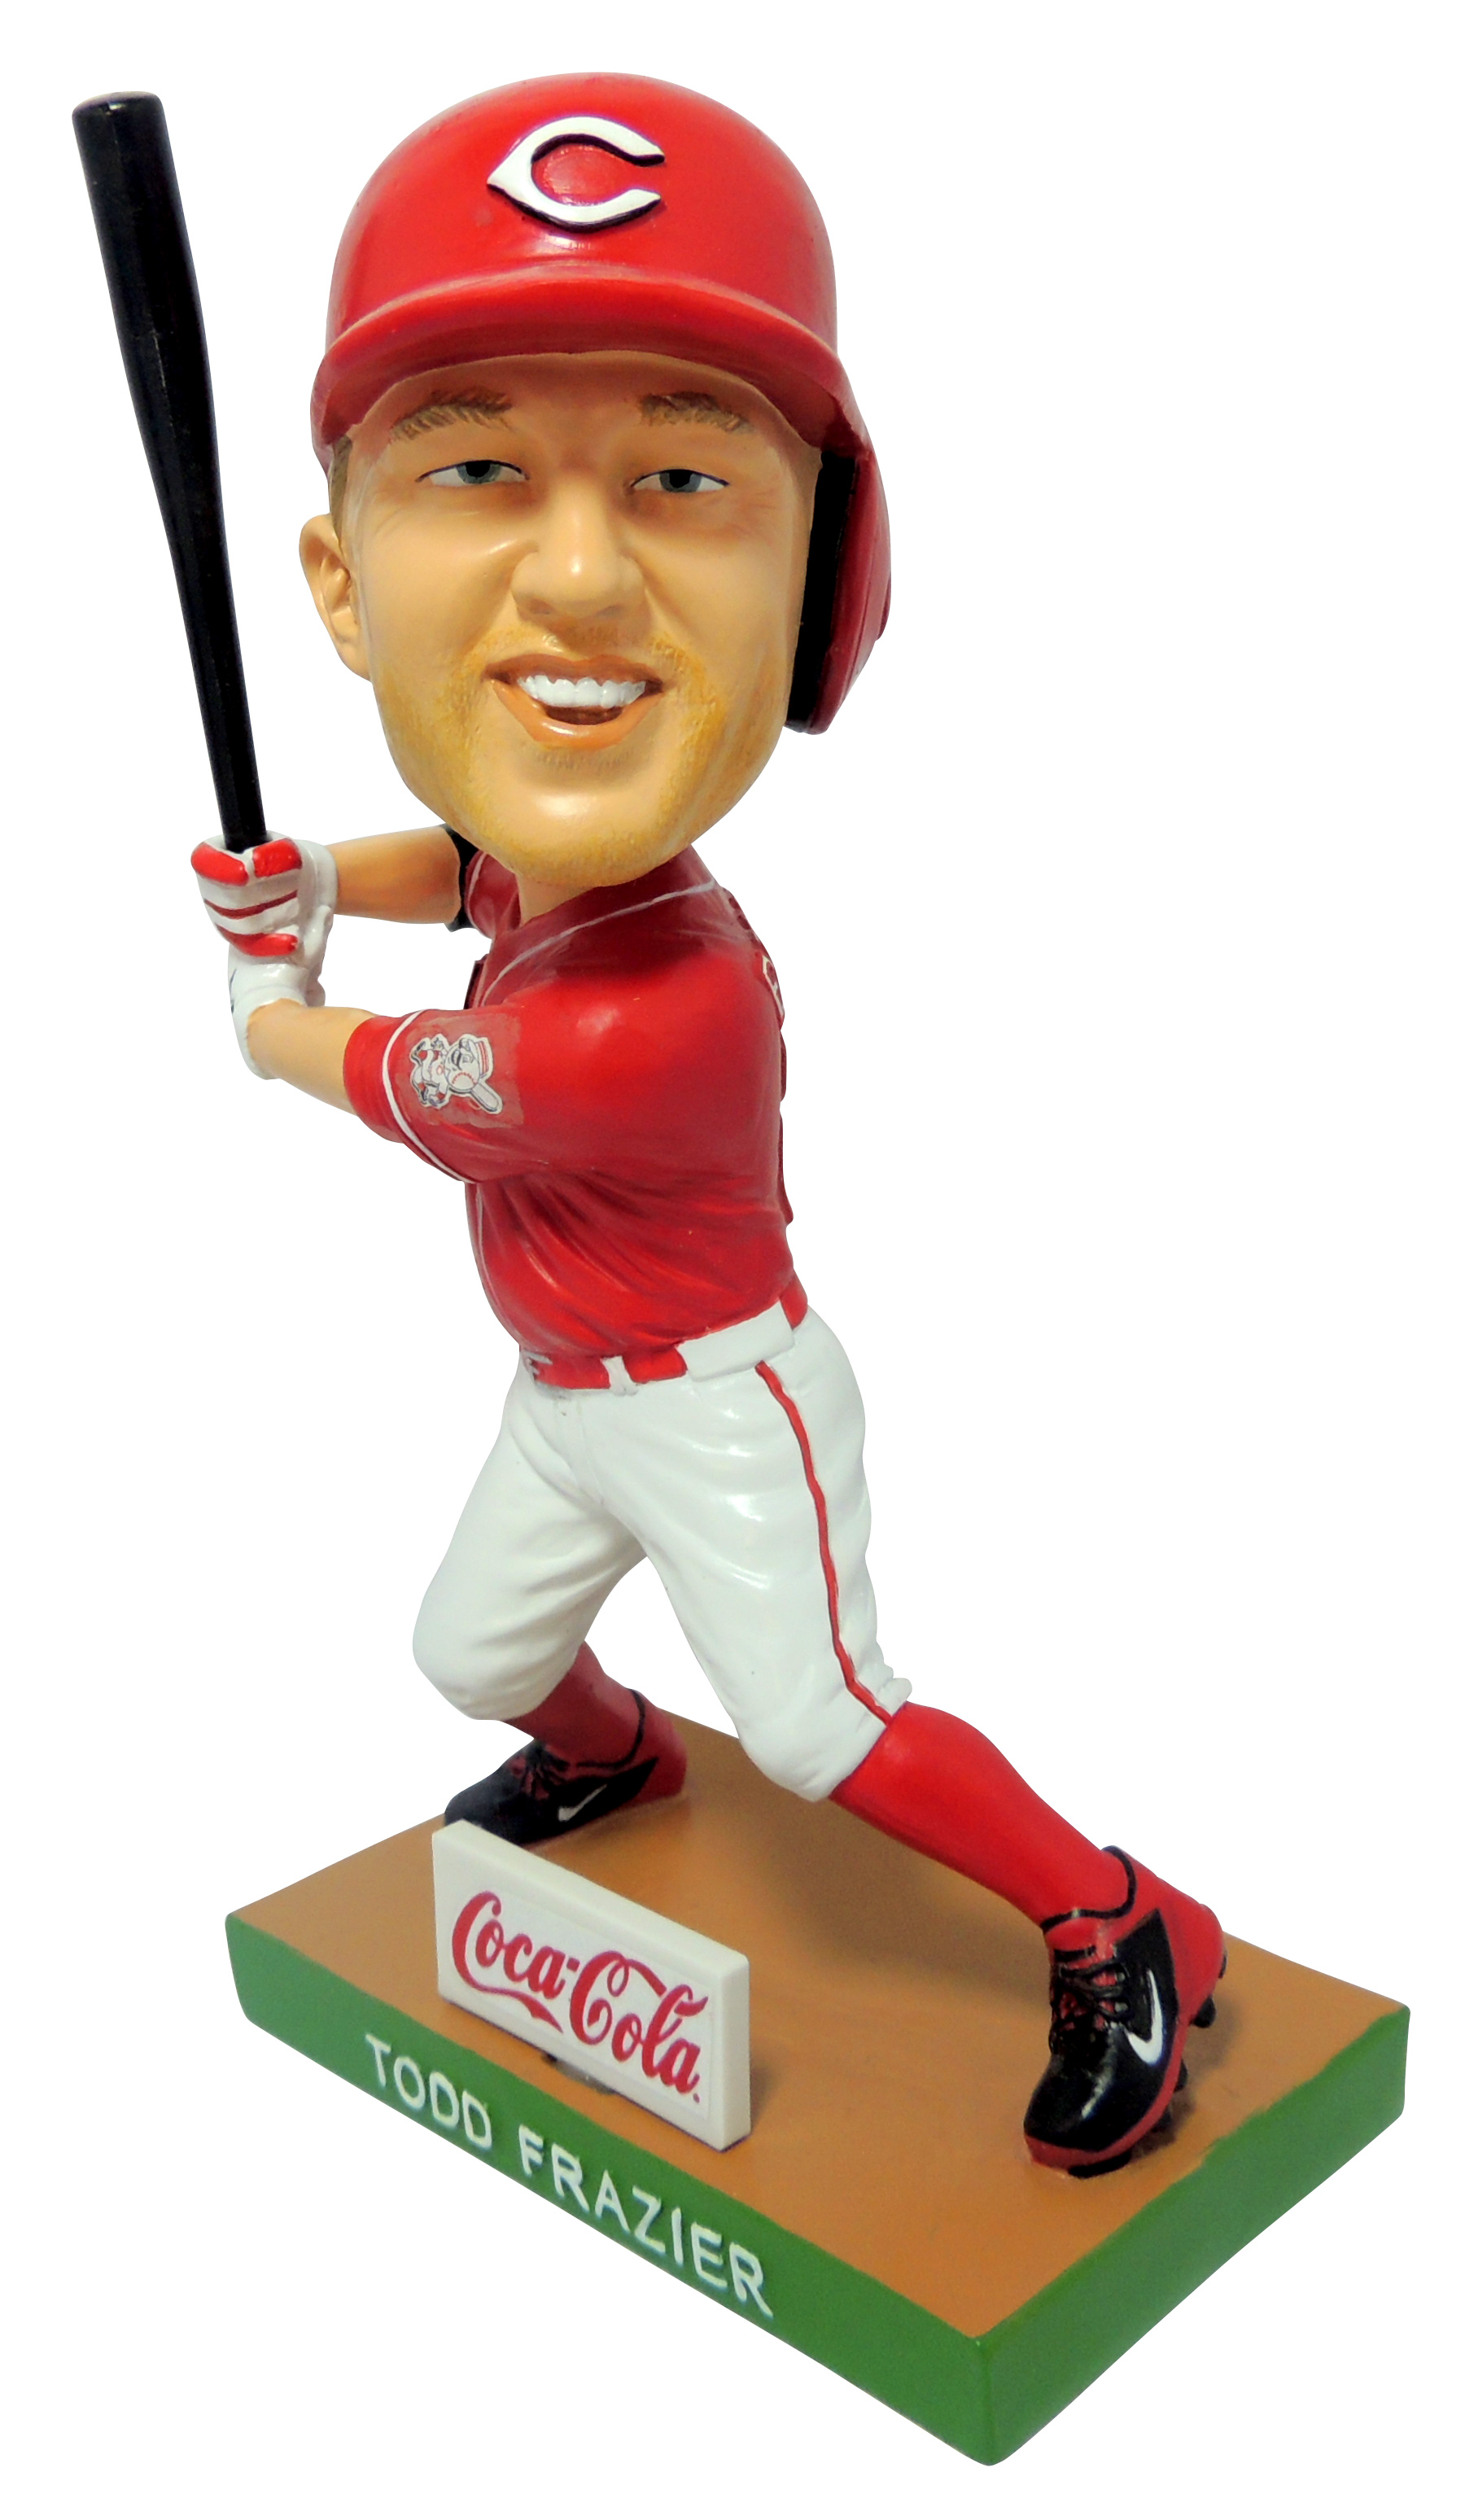 Super Saturdays Featuring A Record Nine Bobbleheads Highlight 2015 Promo Schedule Better Off Red